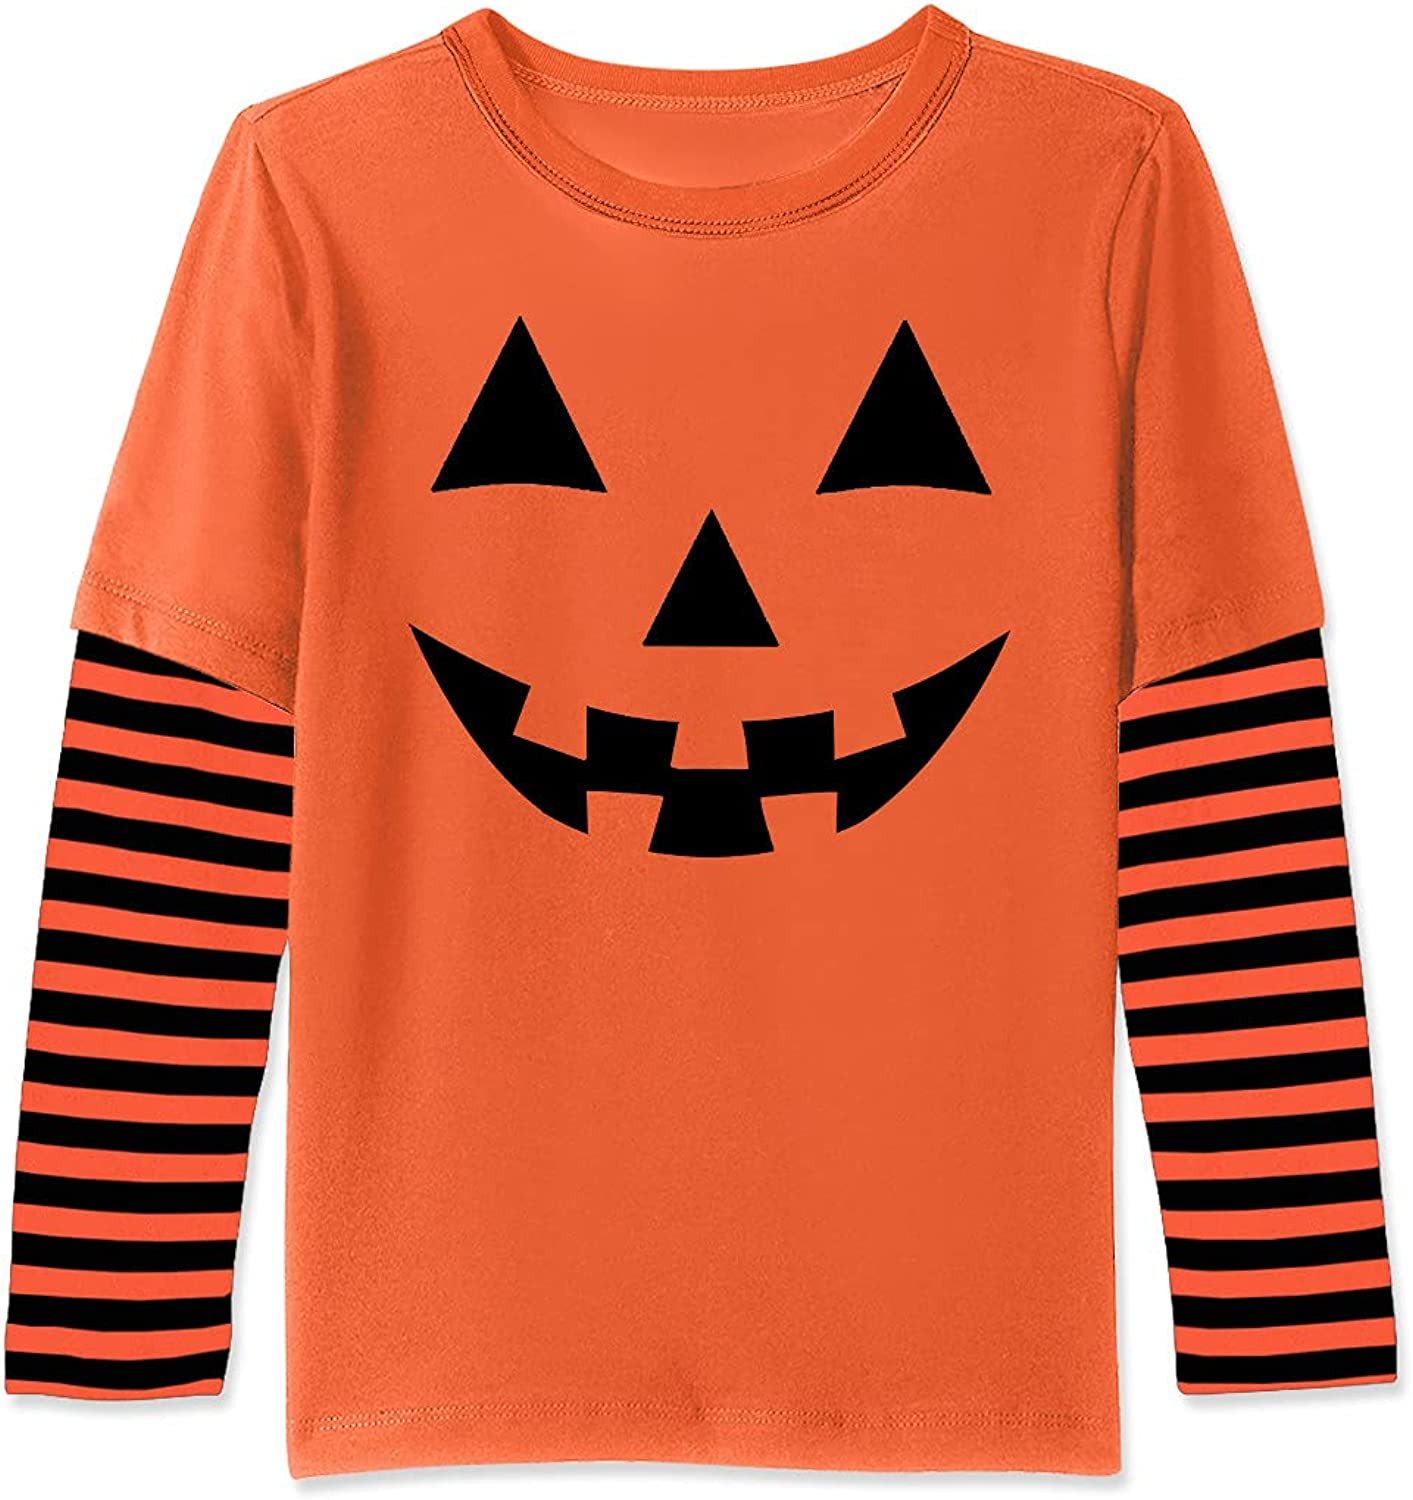 Max 58% OFF BesserBay Unisex Kids Halloween Stripe Shi Patchwork Ranking integrated 1st place Sleeve Long